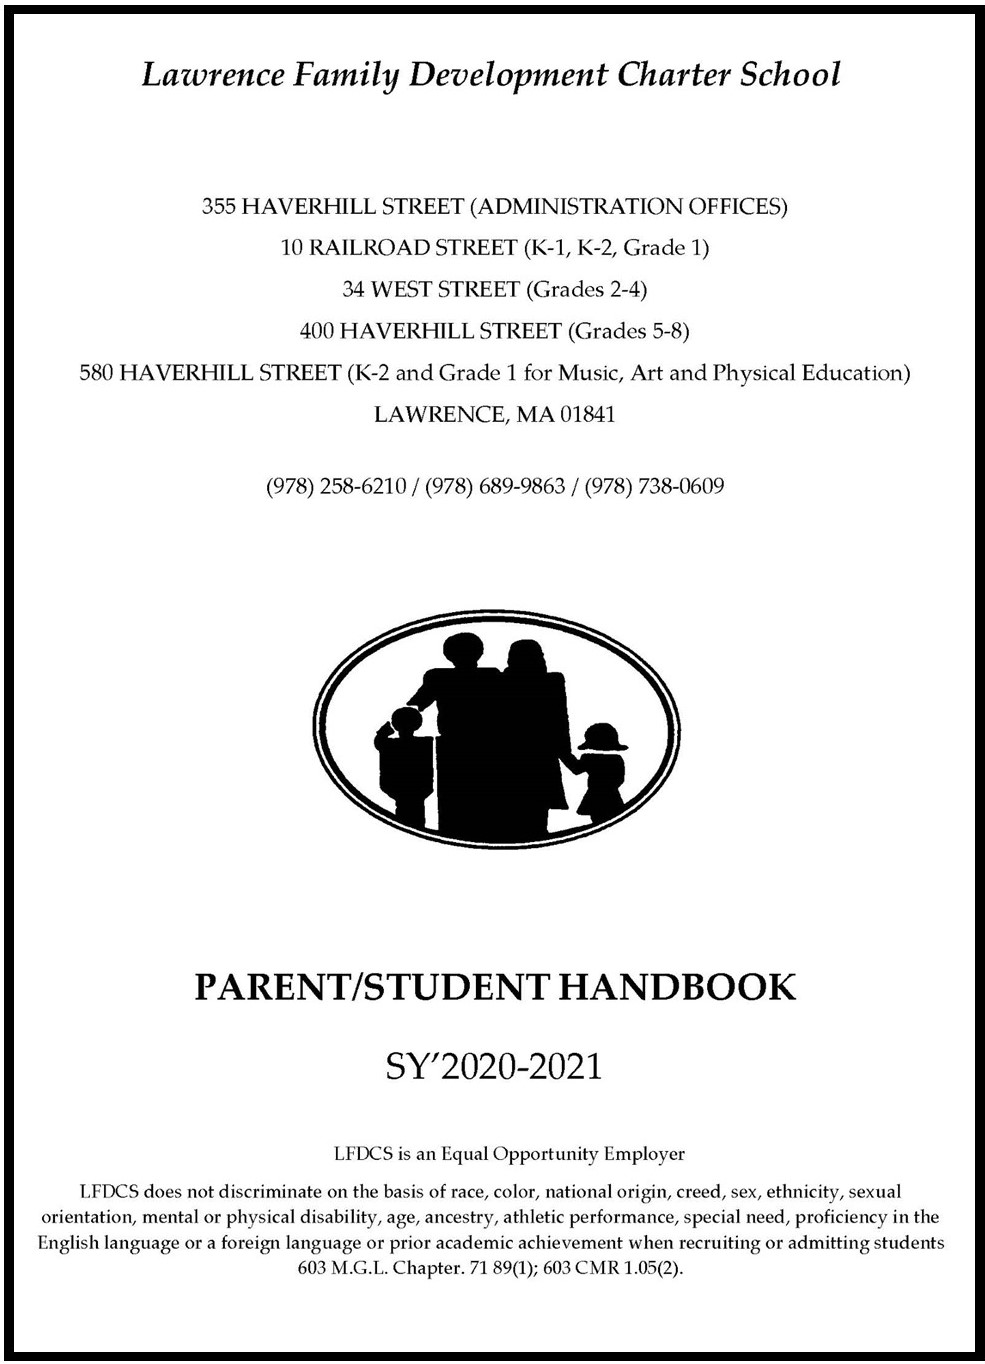 Parent Student Handbook Cover revised